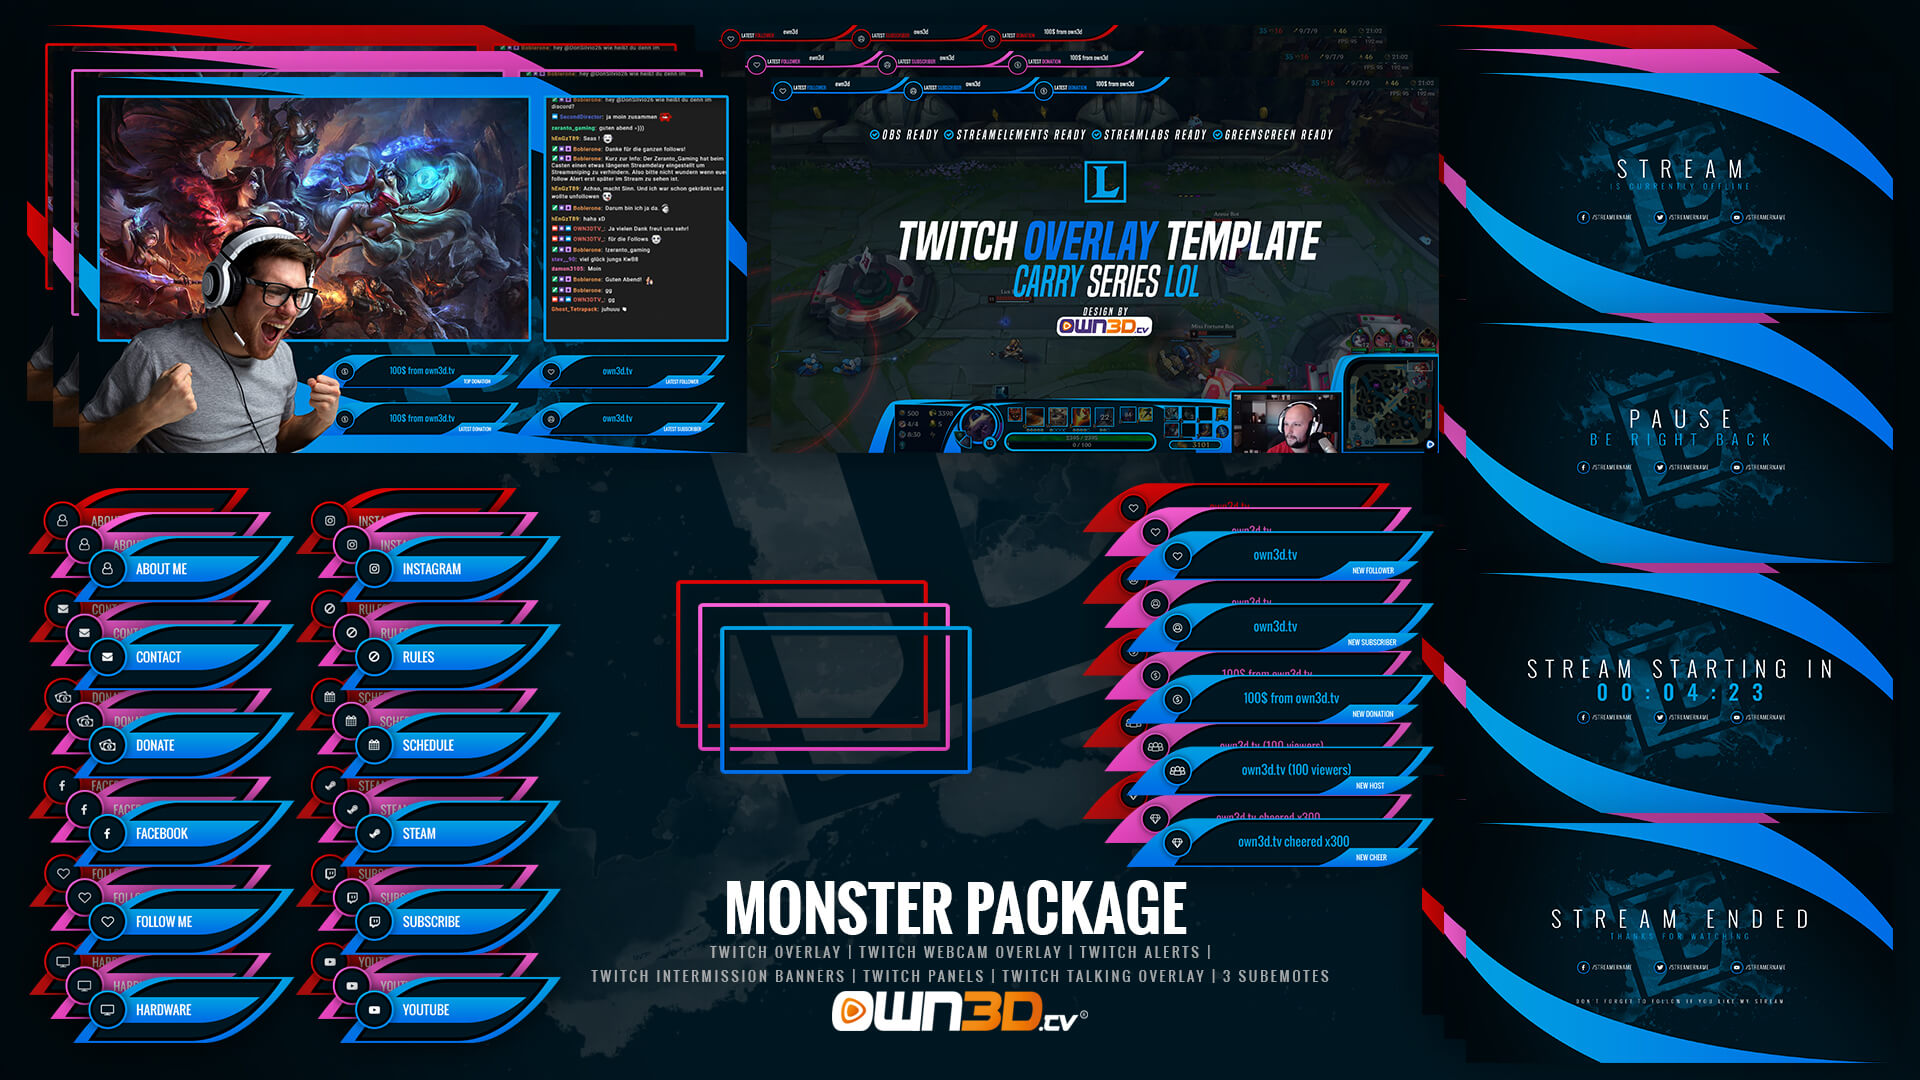 carry-series-ALL-twitch-overlay-package-03-monster.jpg